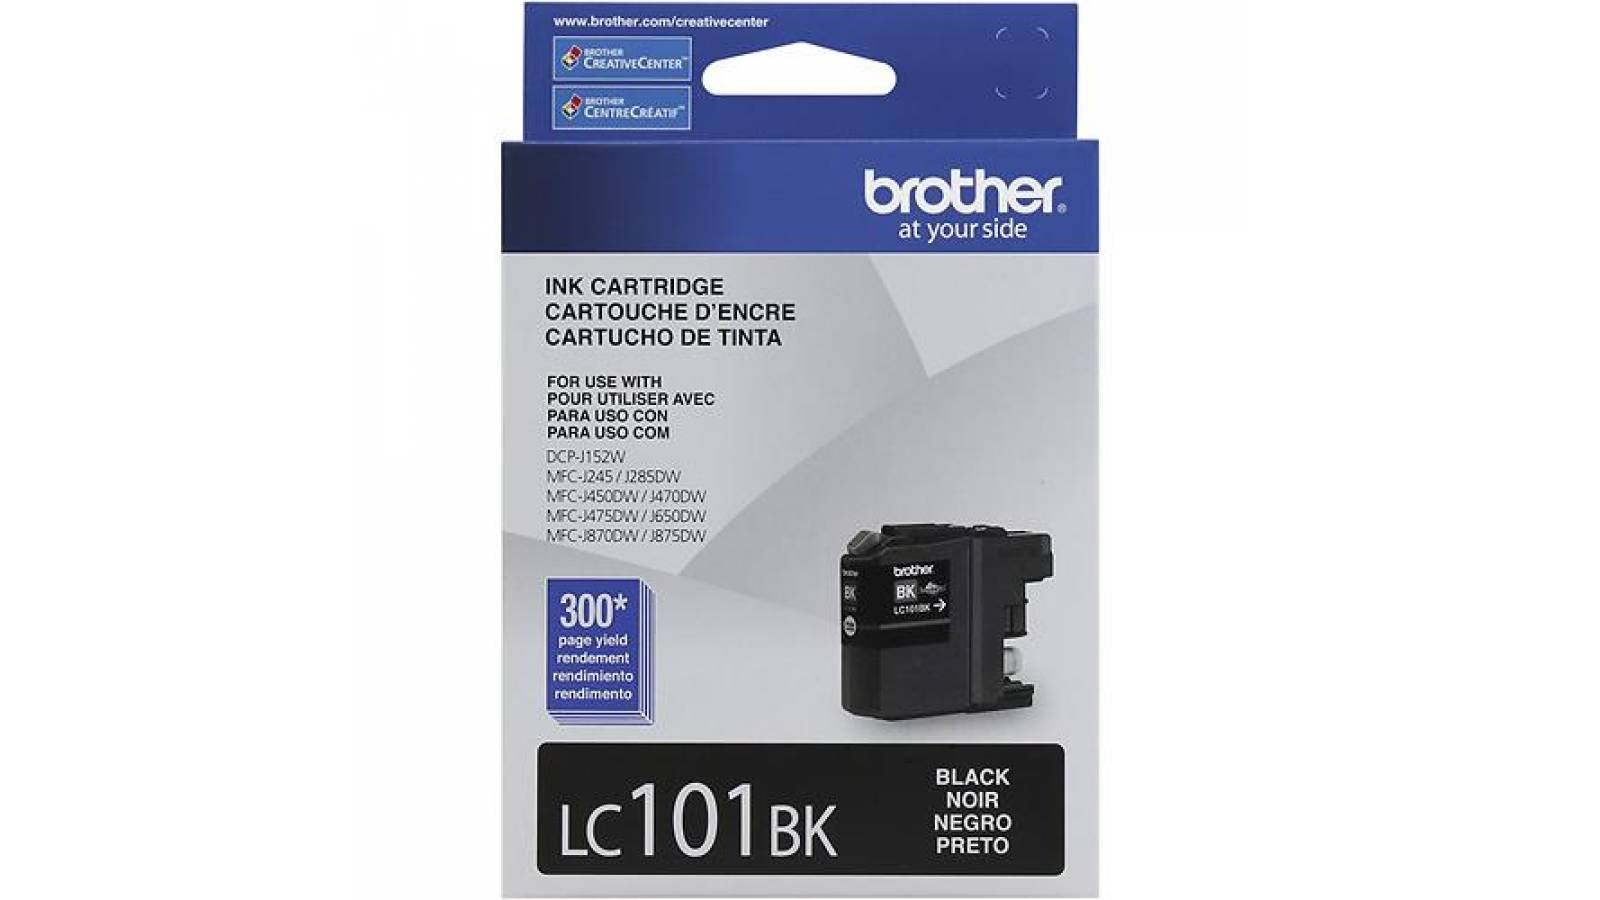 Cartucho de tinta Brother LC-101BK